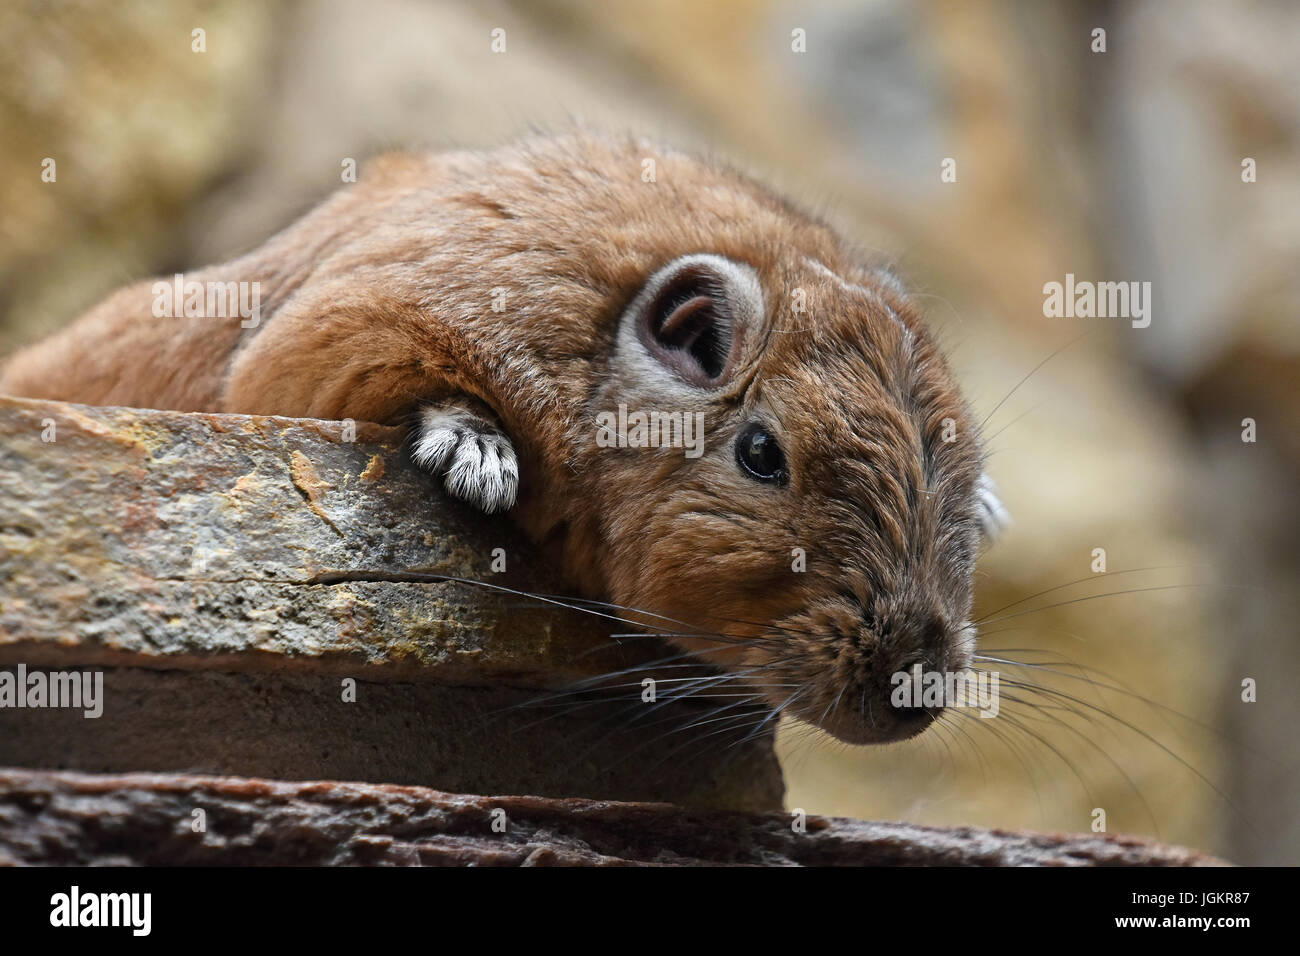 Close up portrait of Gundi comb rat, African rodent, laying down relaxed on stone and looking at camera, low angle - Stock Image